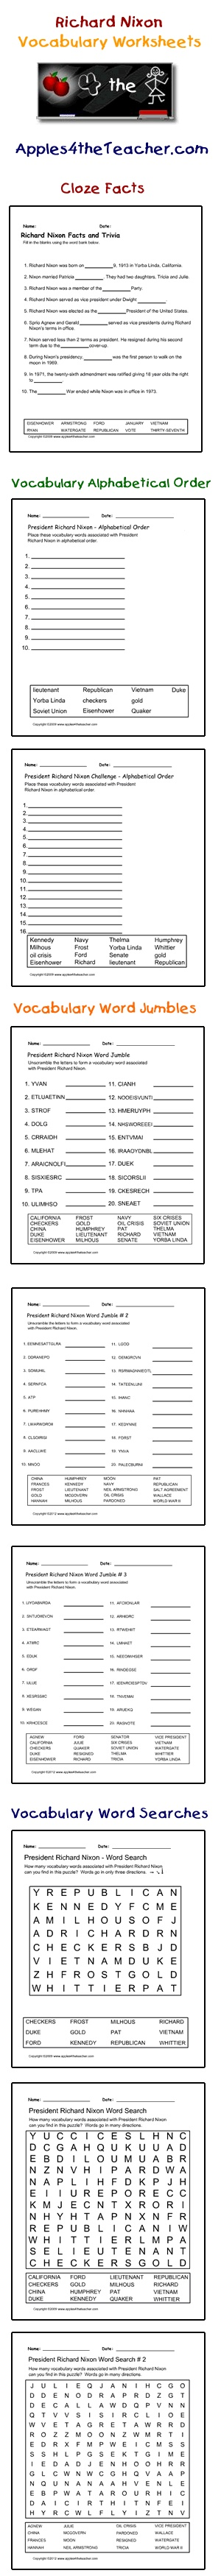 worksheet Cloze Worksheets 78 images about cloze worksheets on pinterest presidents day president richard nixon interactive vocabulary words facts activity page alphabetical order worksheets